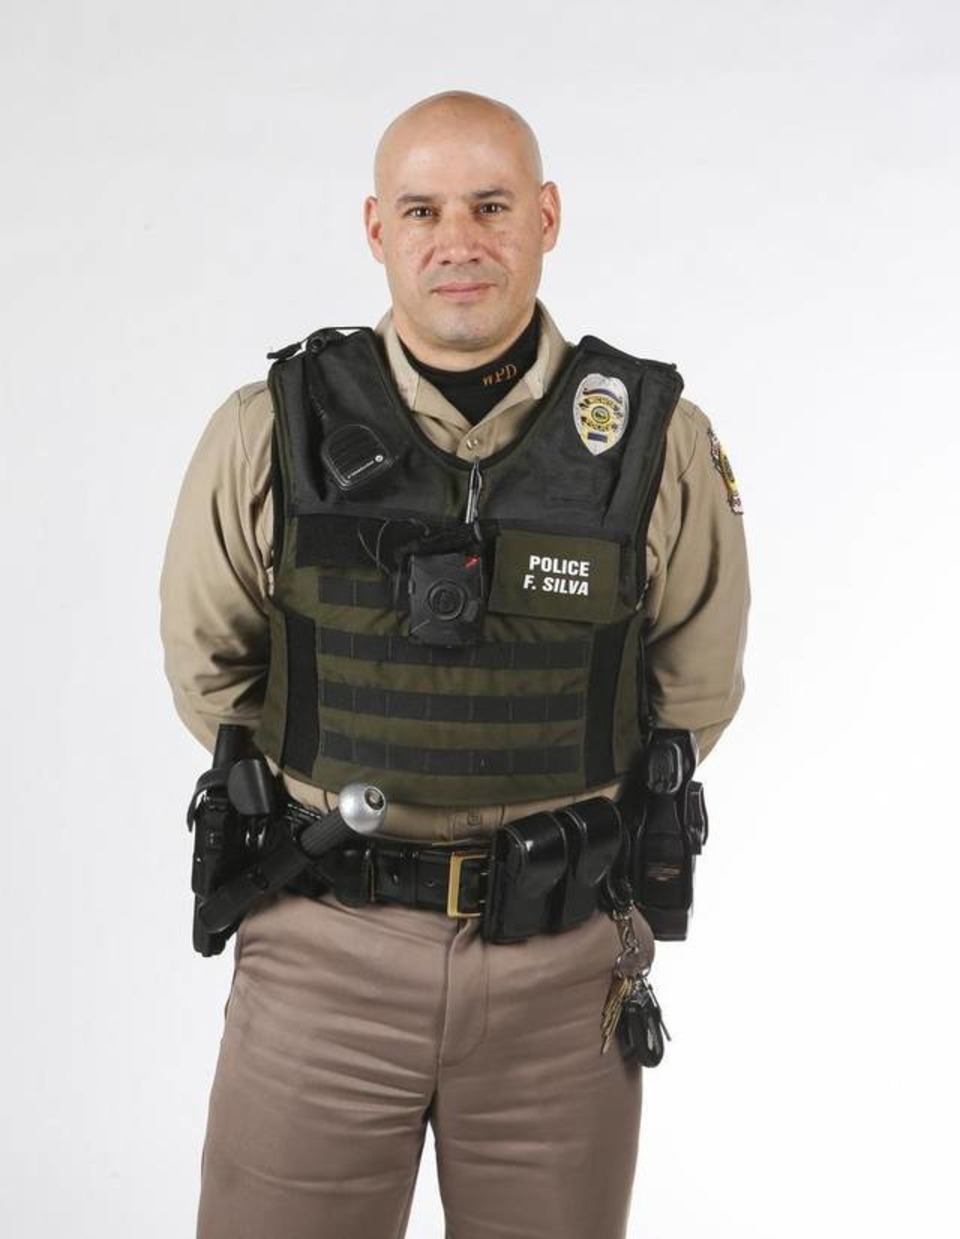 f8cc560927f Top tips to redesigning and replacing law enforcement uniforms